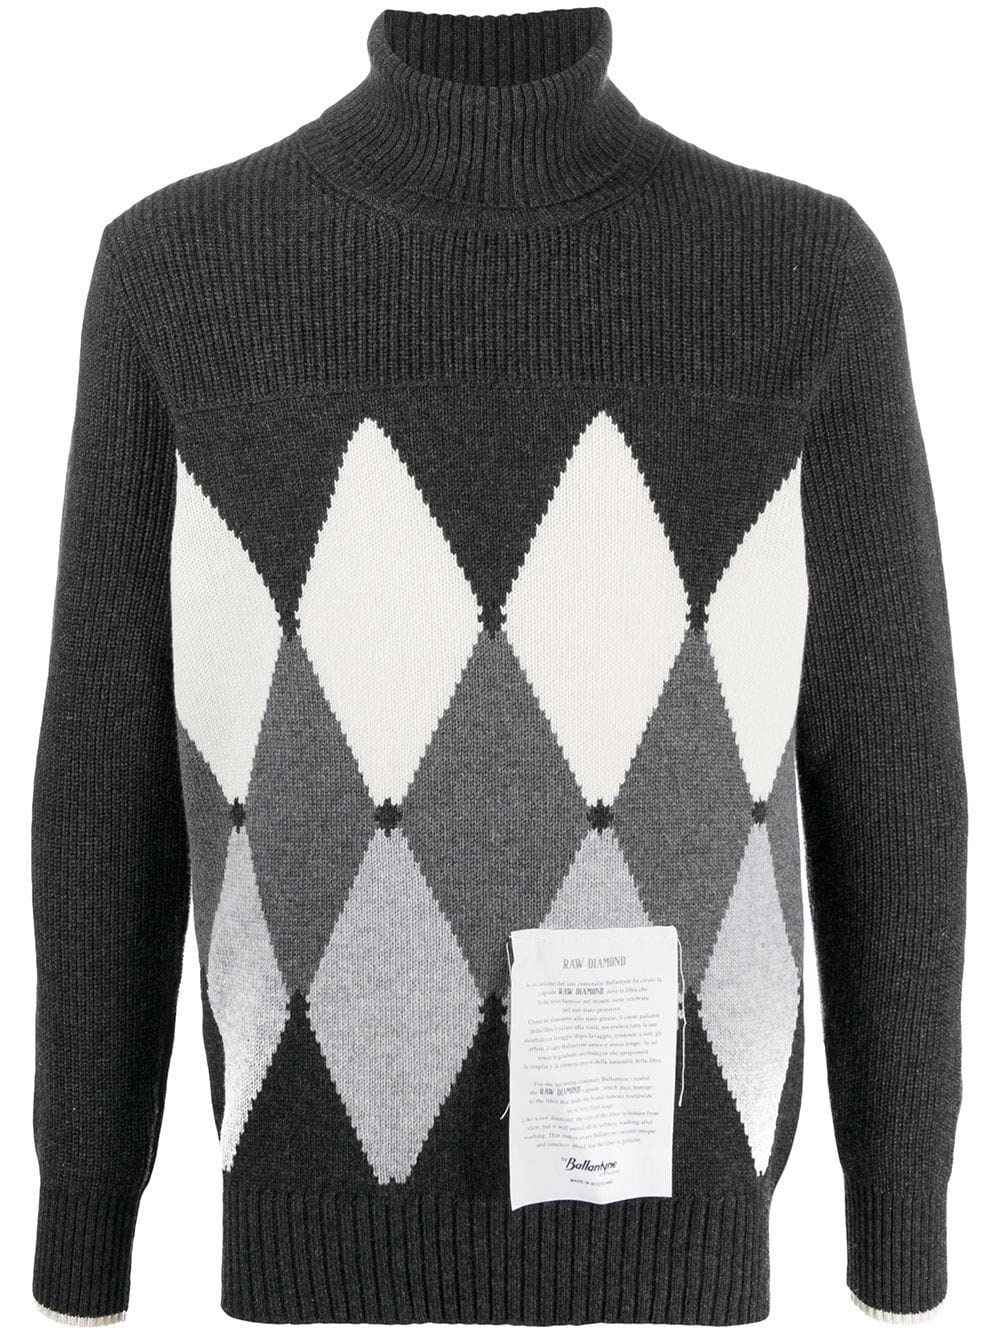 RAW DIAMOND BY BALLANTYNE Diamond Cashmere Jumper